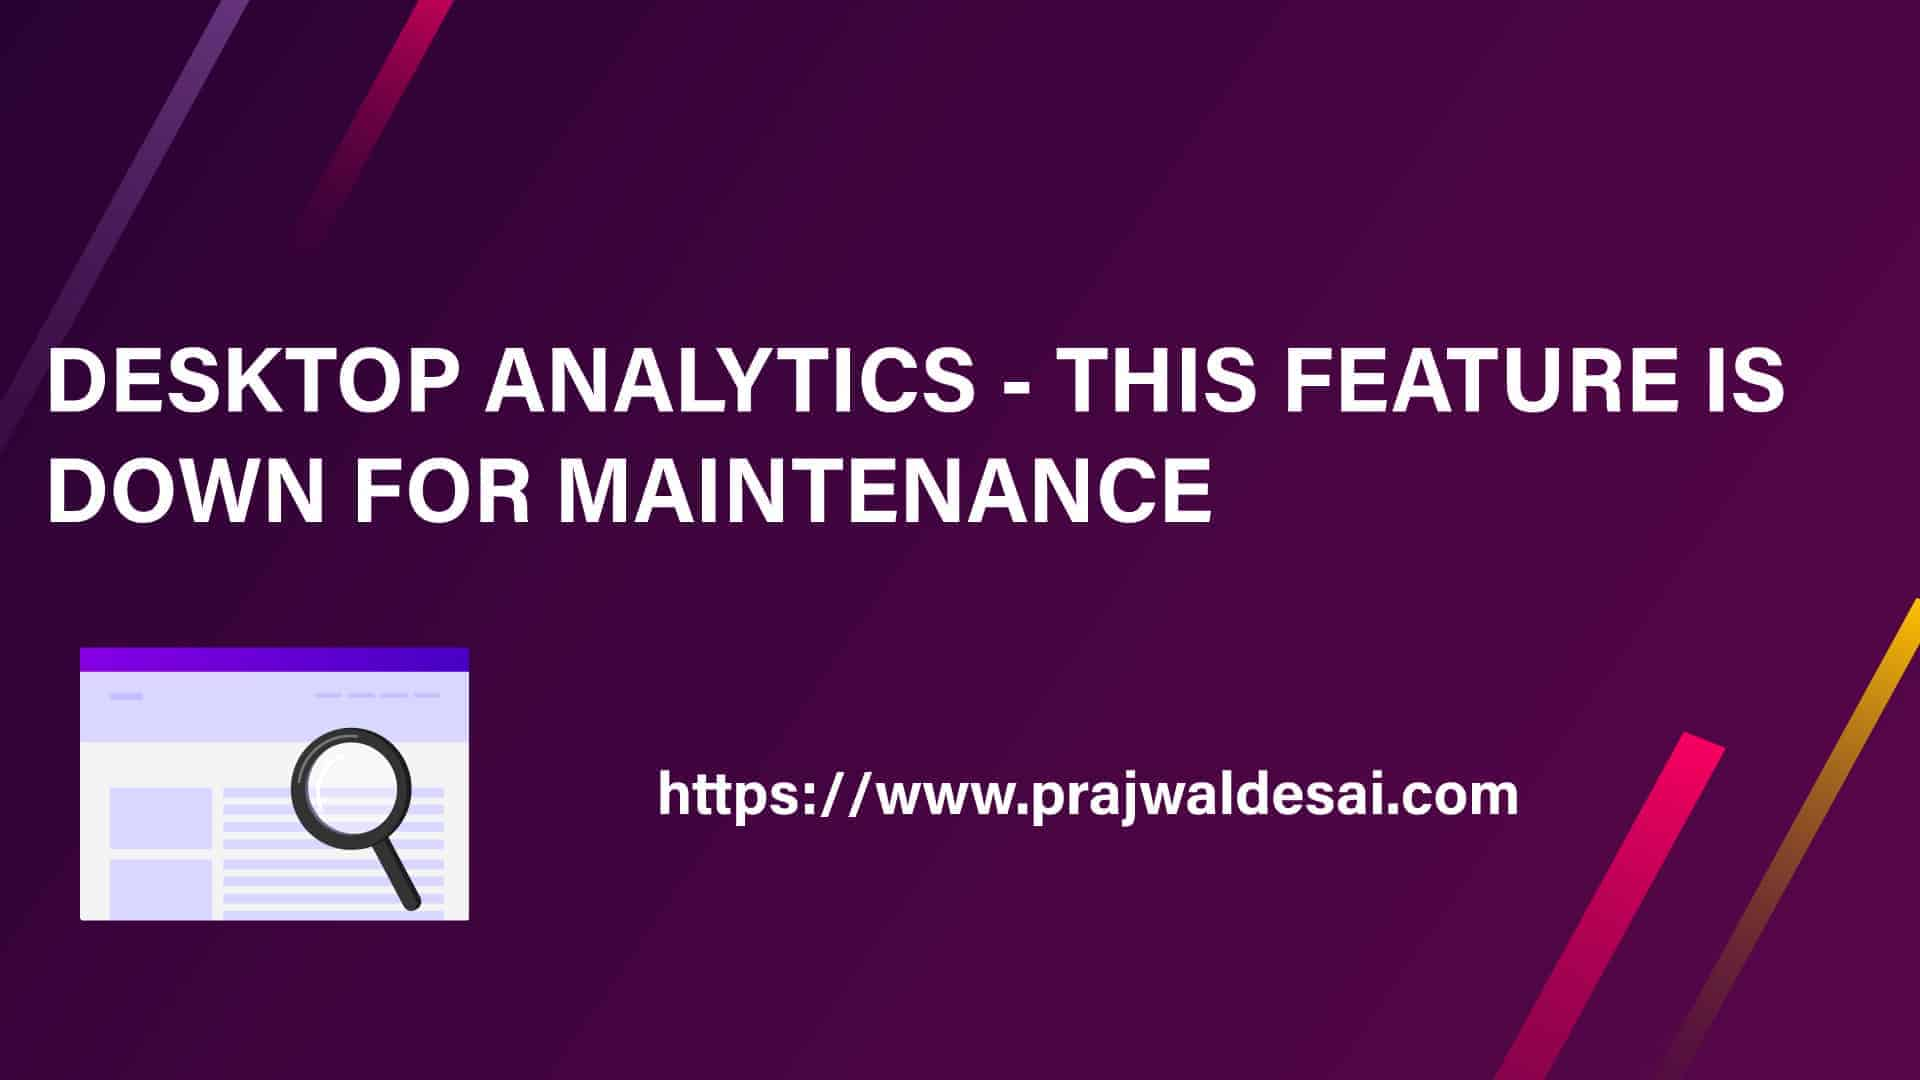 Desktop Analytics - This Feature is Down for Maintenance